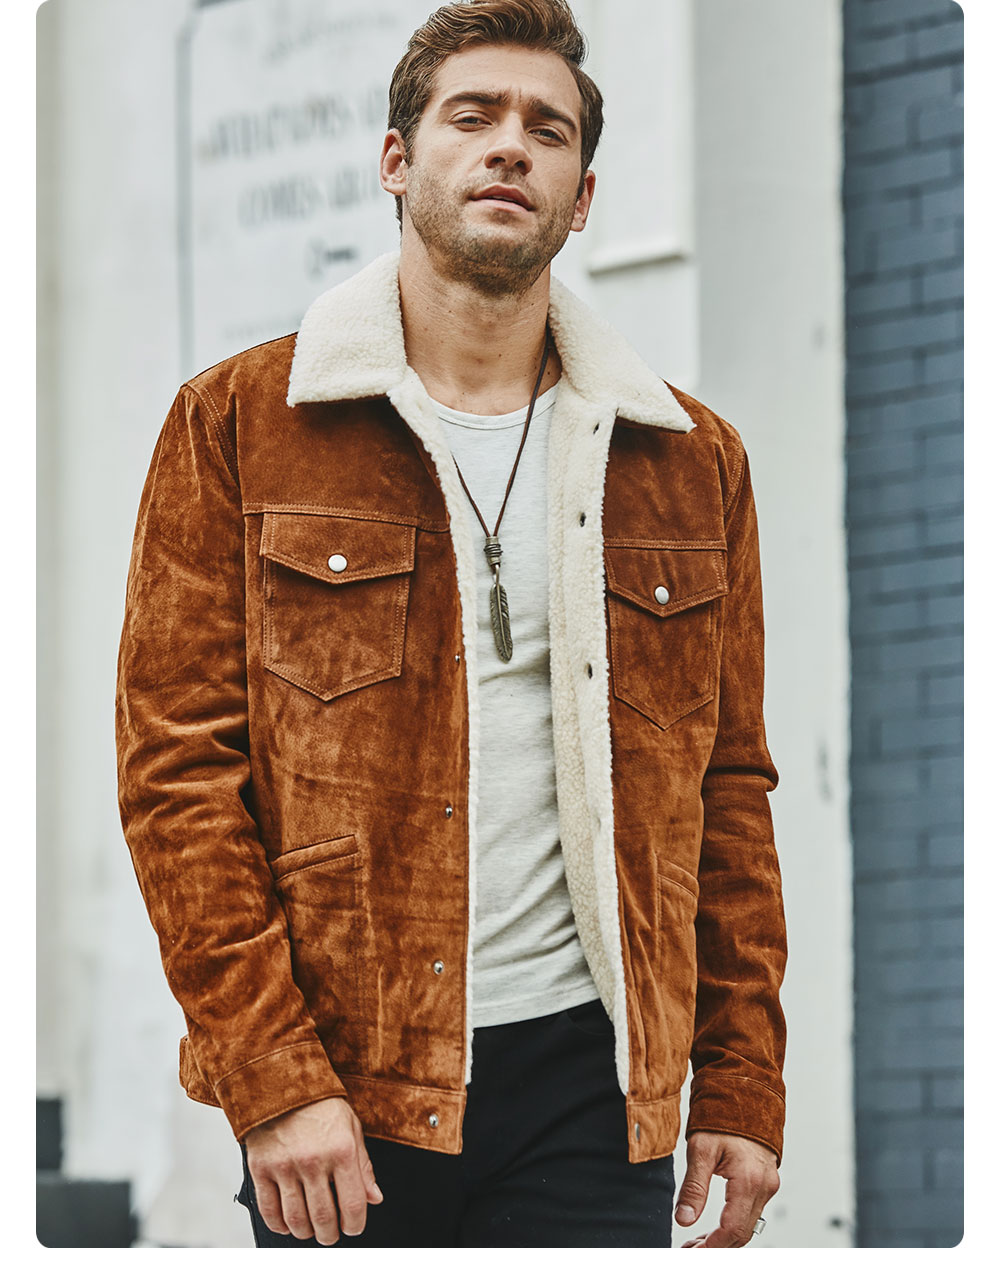 Hc5d7017ceb55412aa06fc0d701225c675 FLAVOR New Men's Real Leather Jacket Genuine Leather With Faux Shearling Warm Coat Men